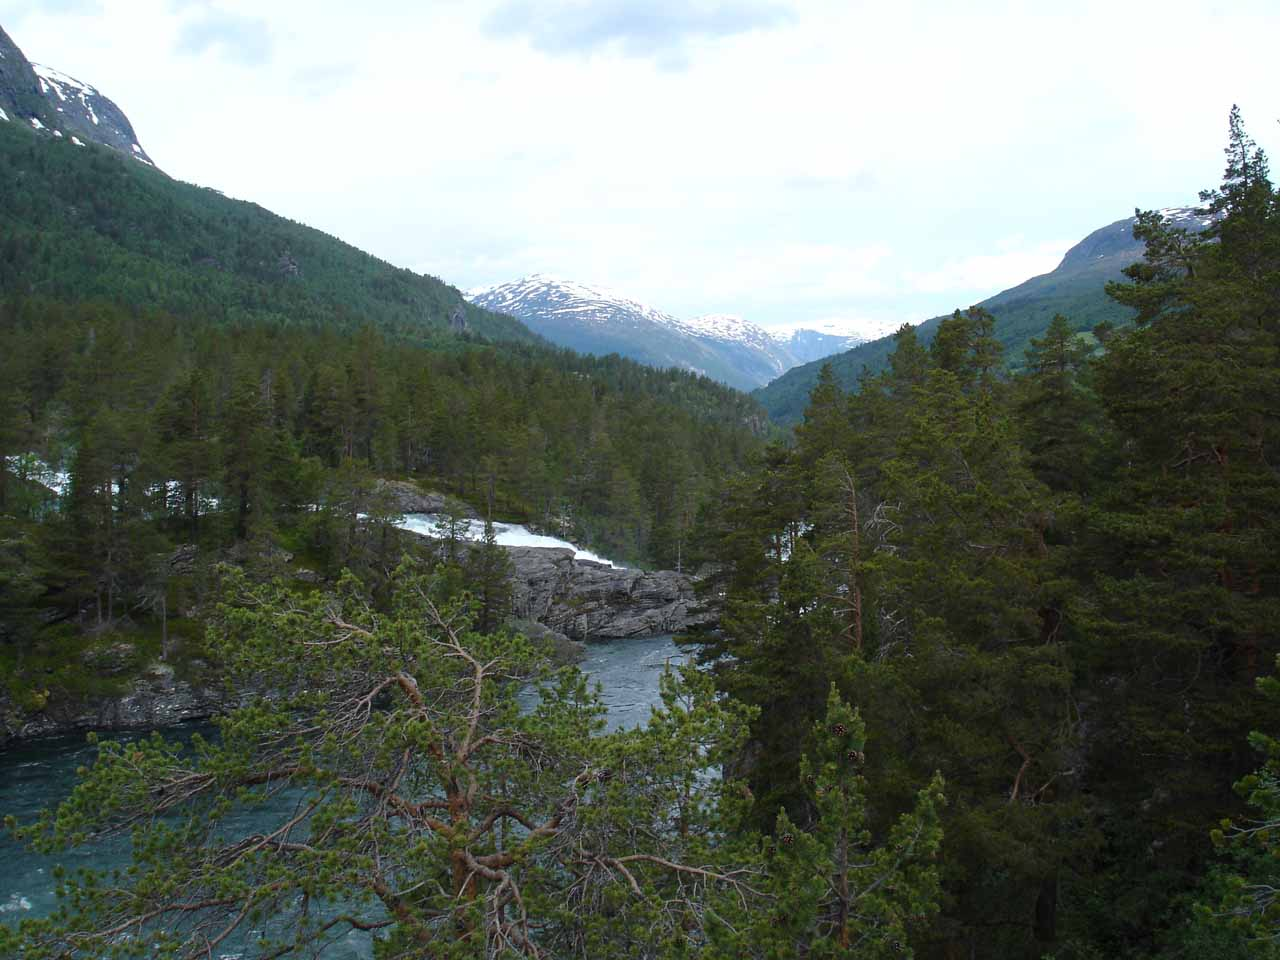 This was the view looking downstream along the Rauma towards Romsdalen from Kleivafossen